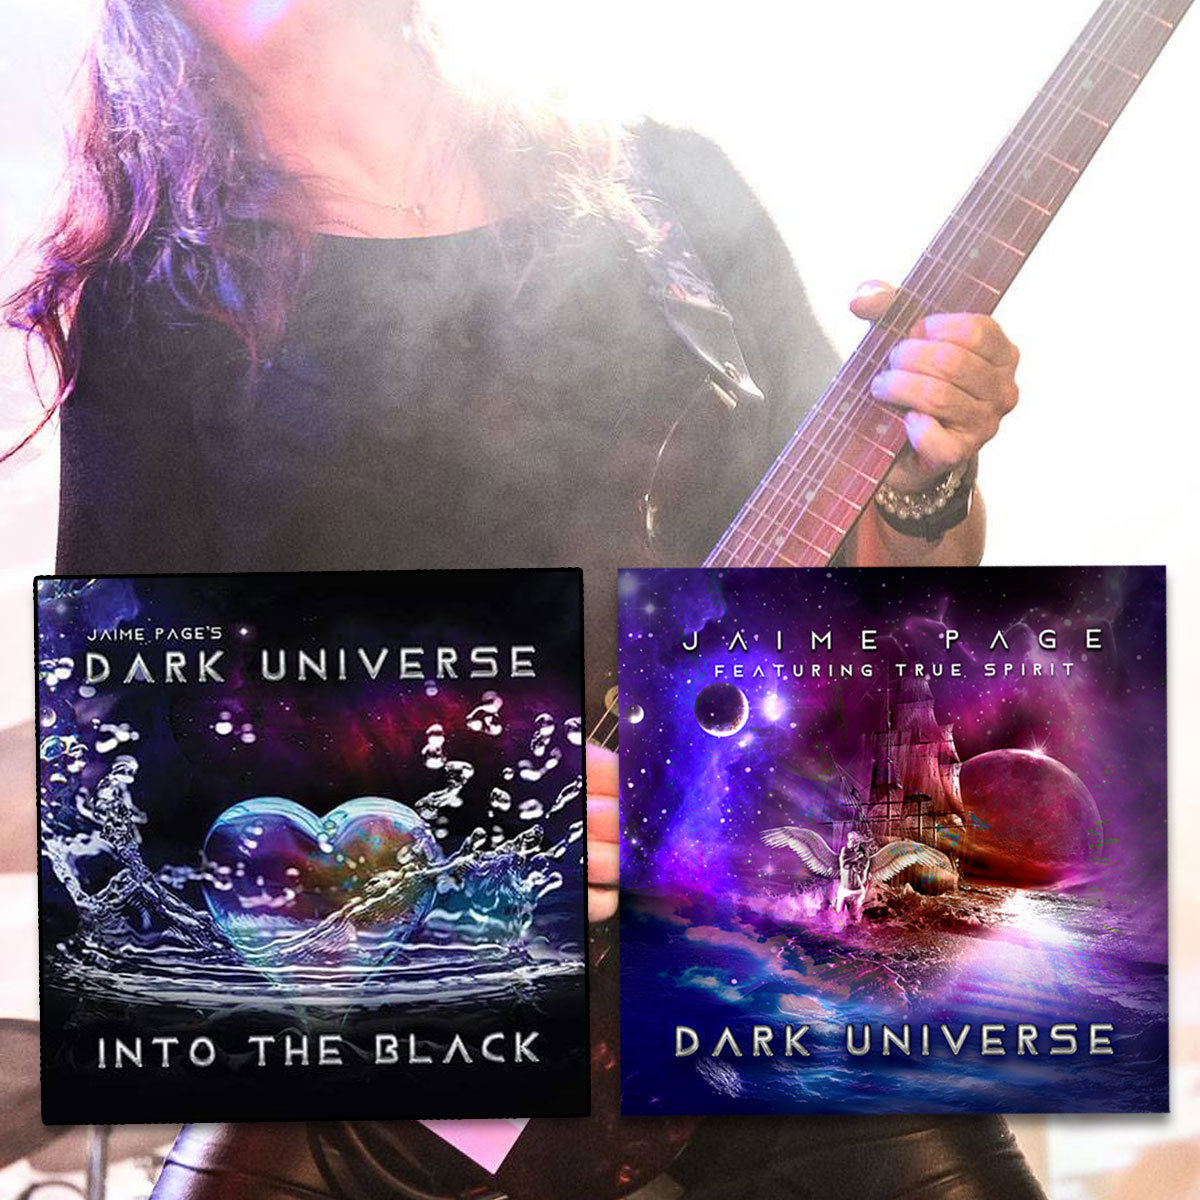 Dark Universe CD Bundle - Get Both!